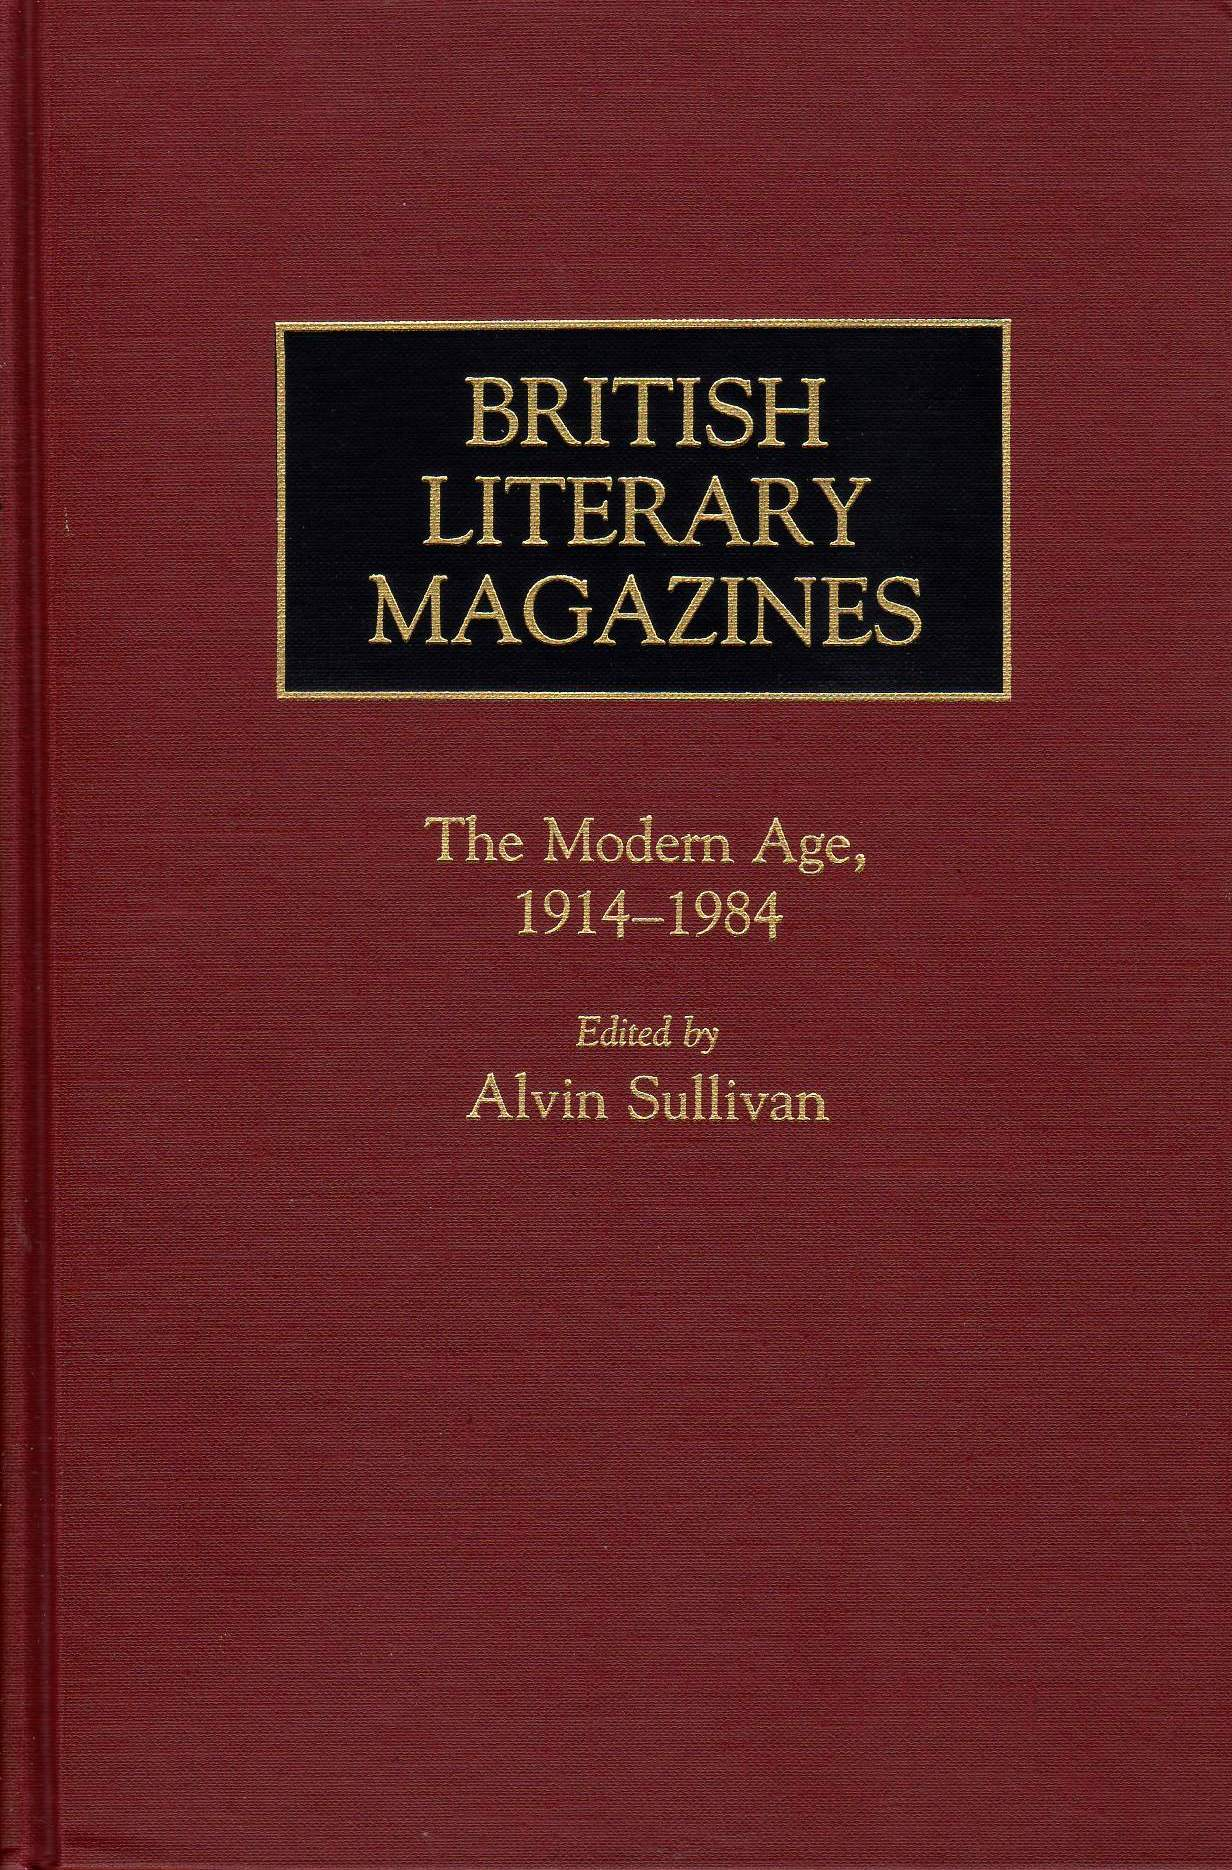 British-Literary-Magazines4.jpg